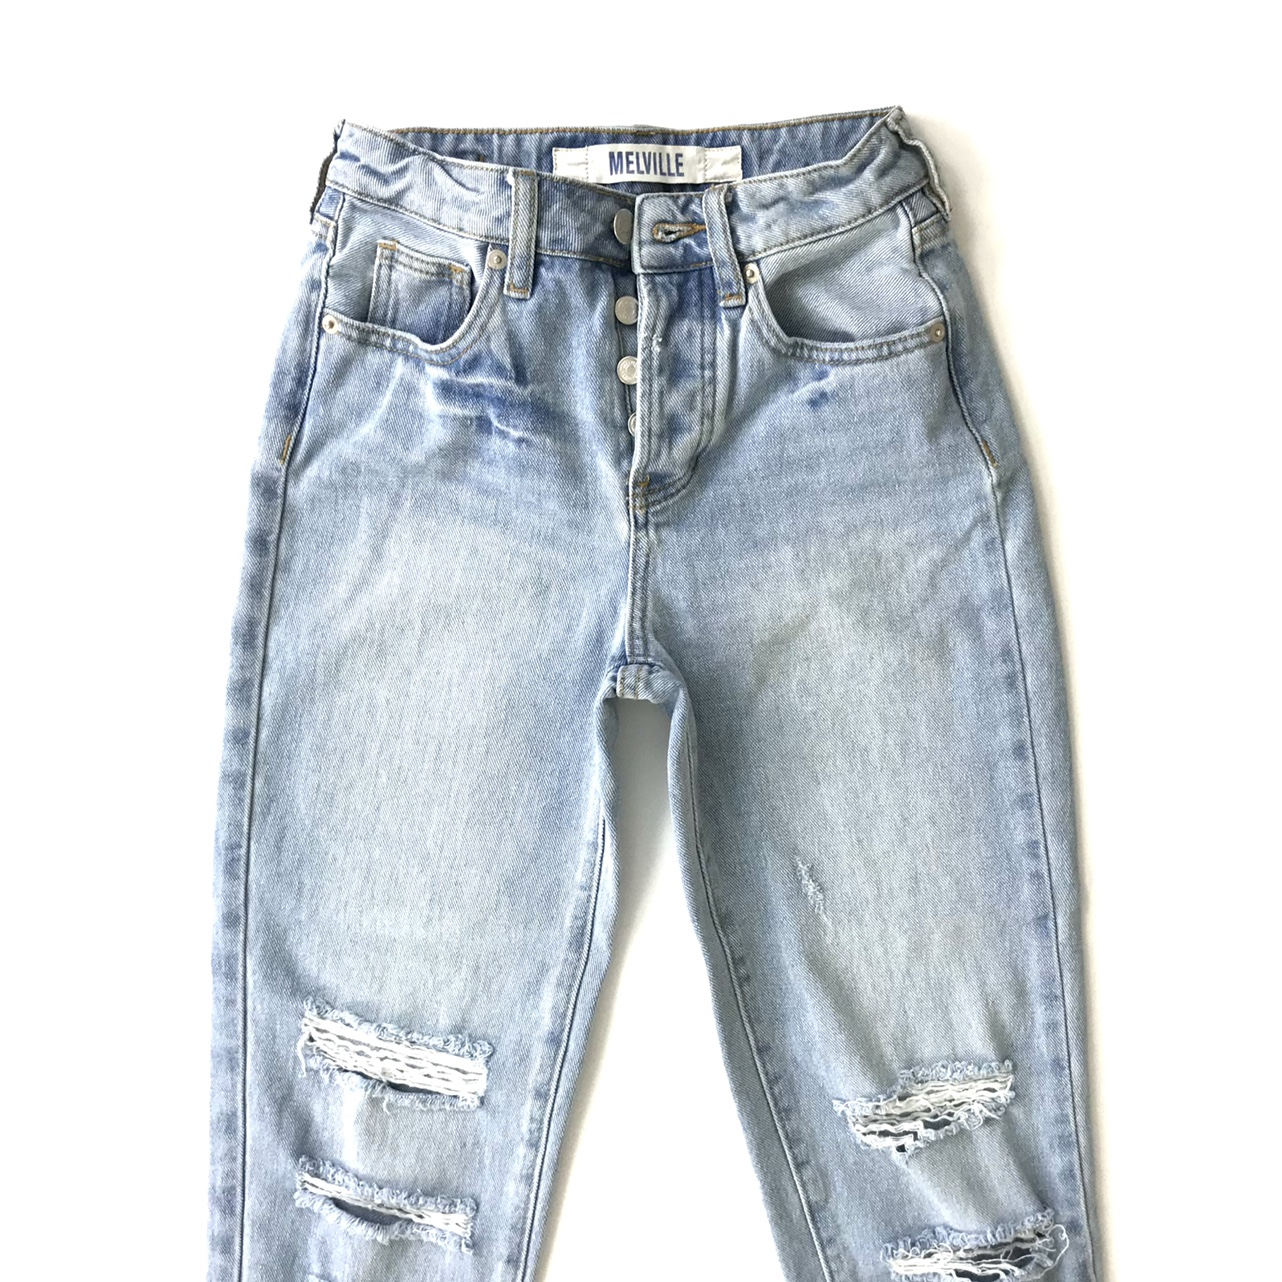 Product Image 1 - Brandy Melville Jeans  Brand new,